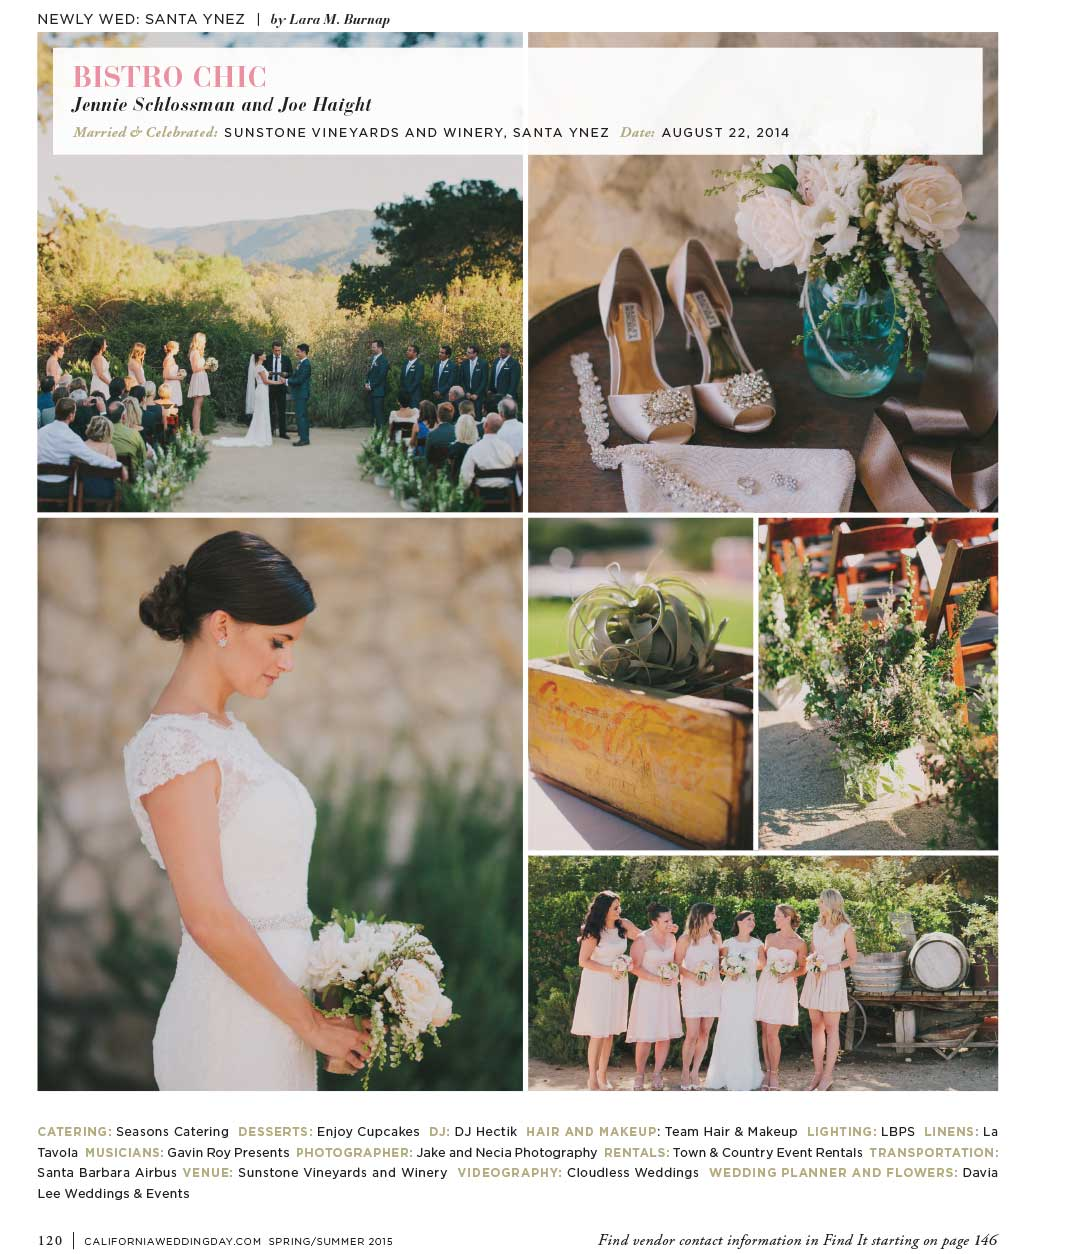 press-page-davia-lee-california-wedding-day-ss2015-p120